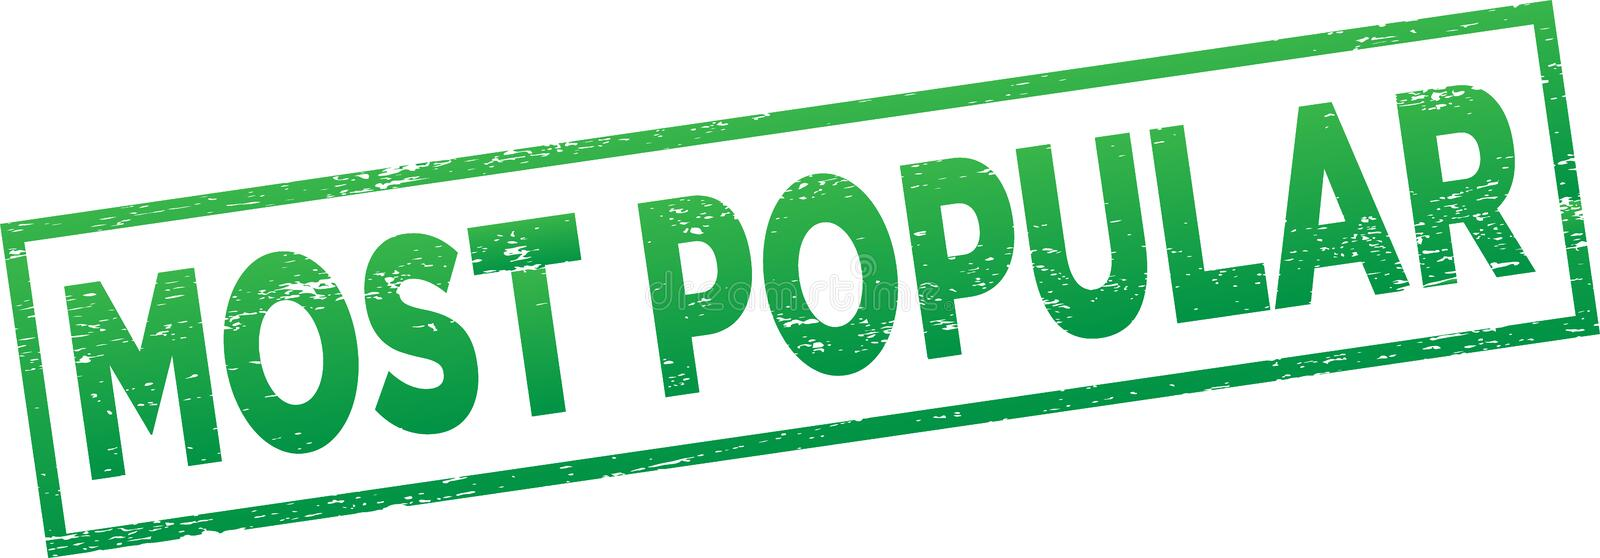 Most popular stamp. Editable vector illustration - most popular text grunge stamp sign - isolated white background royalty free illustration